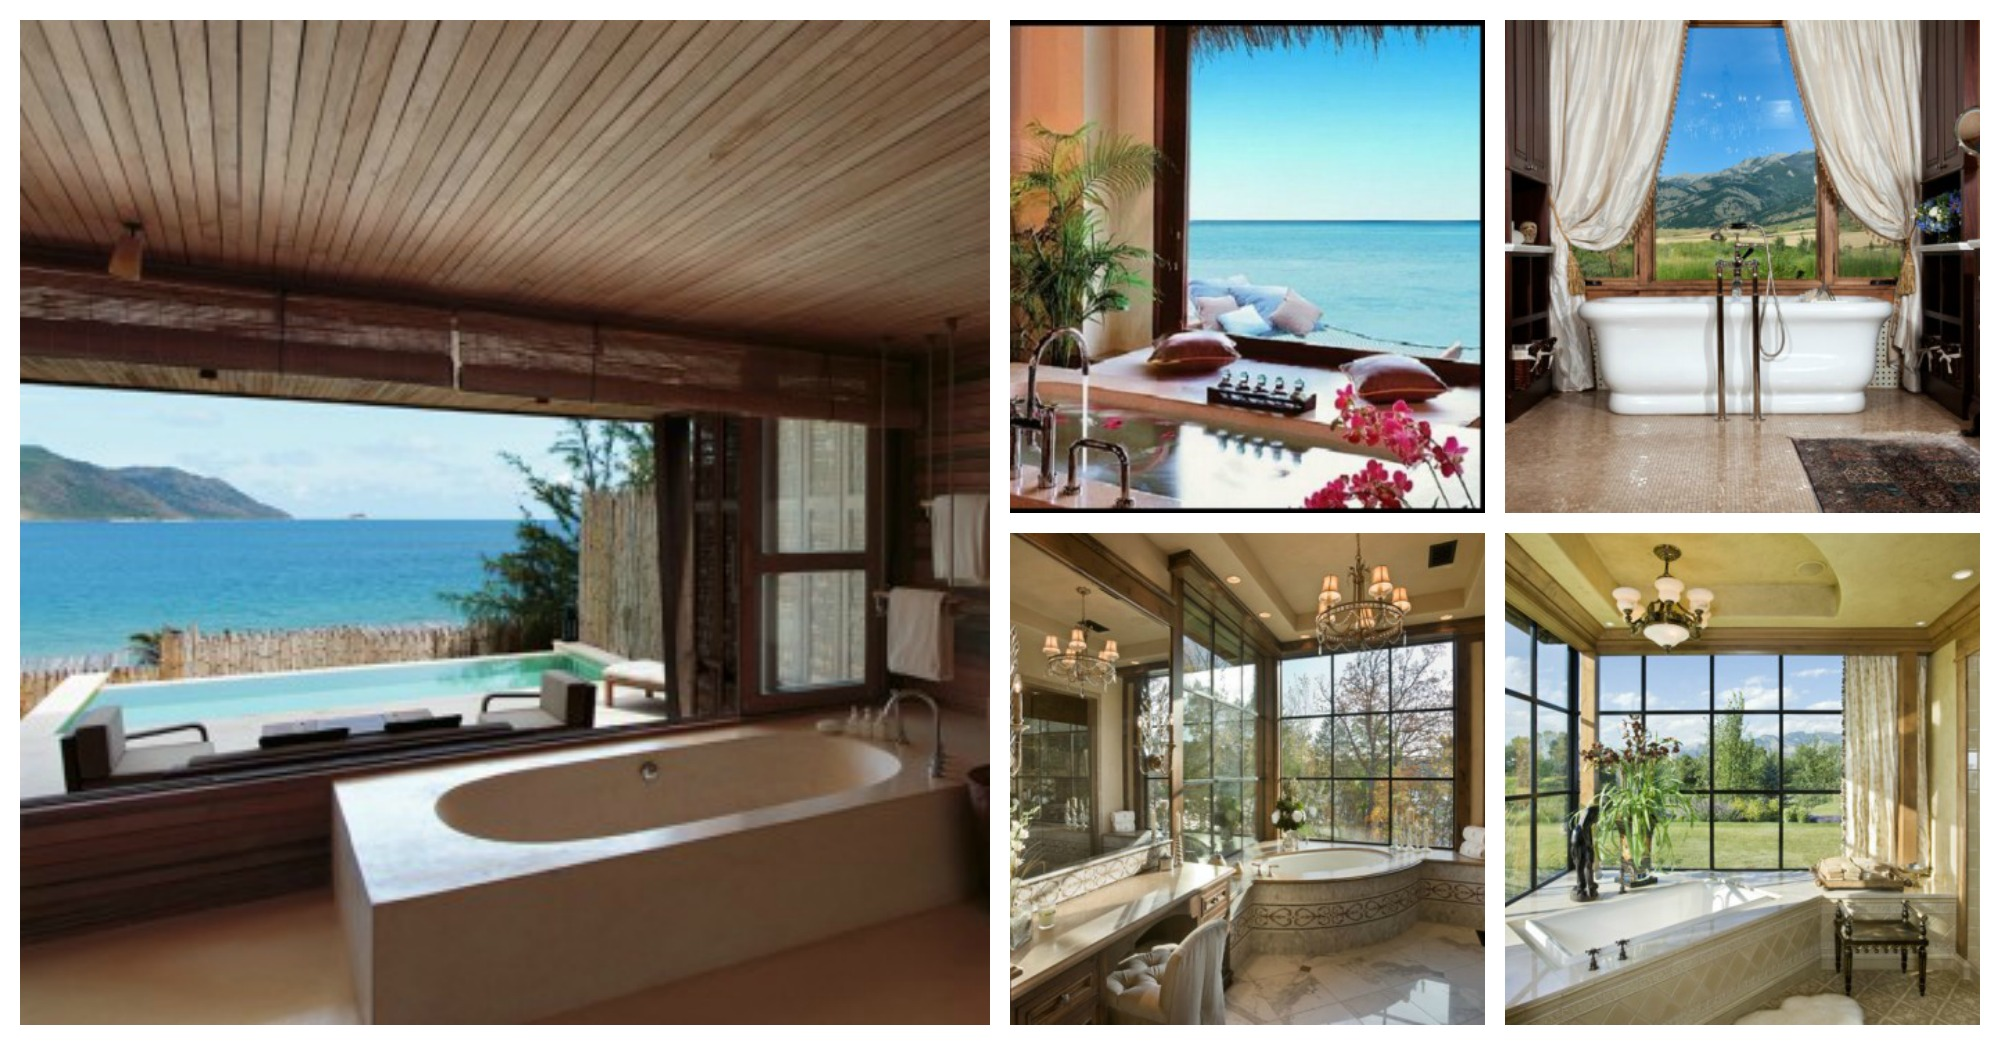 10 Tranquil Bathroom Designs with Open Views